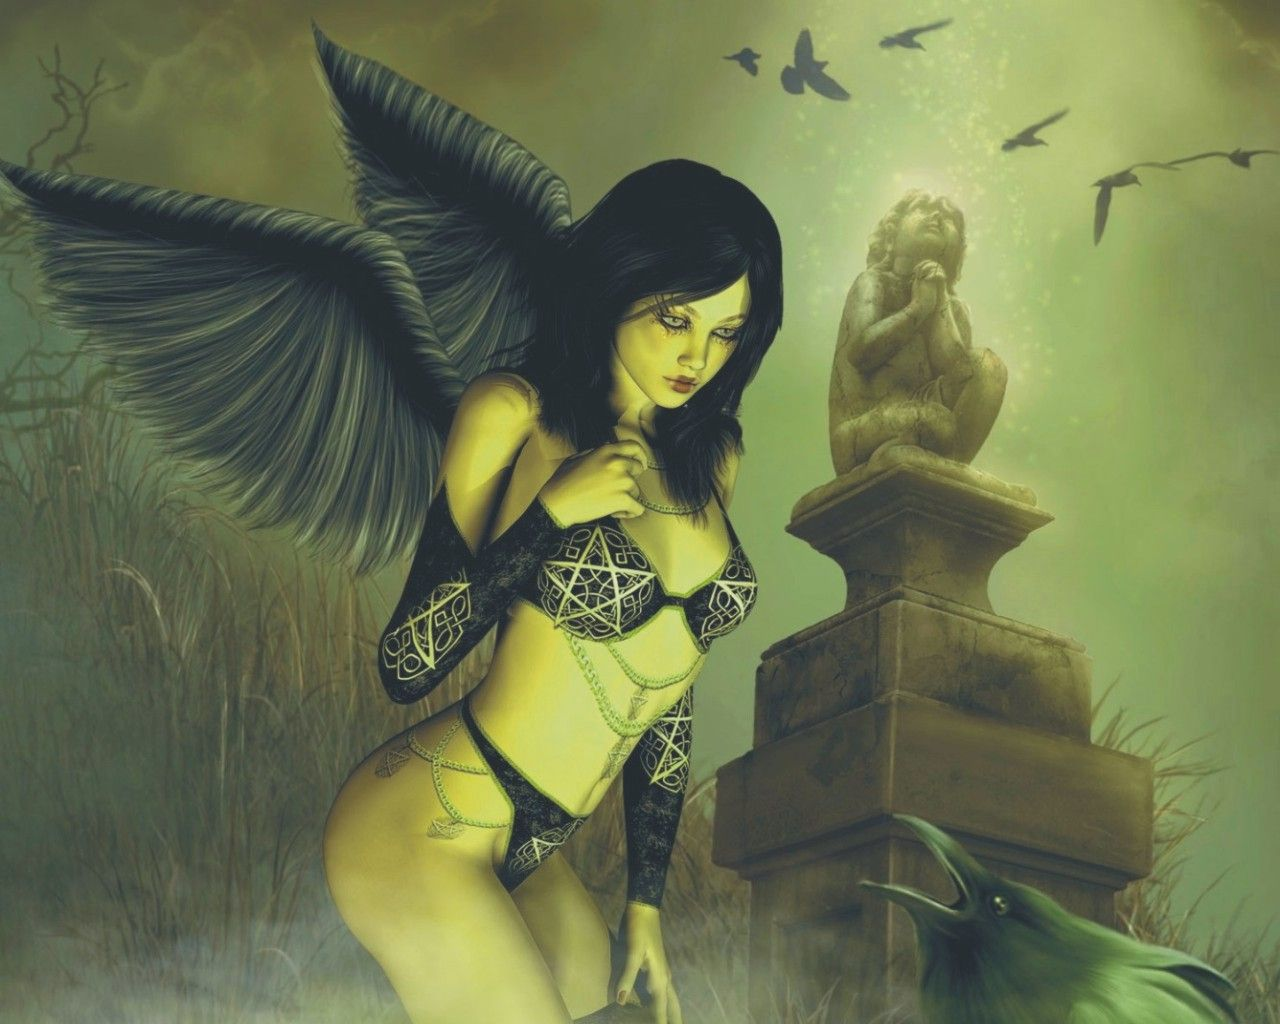 Satan Evil Angel Wallpaper From Angels Wallpapers Angel Wallpaper Evil Angel Angel